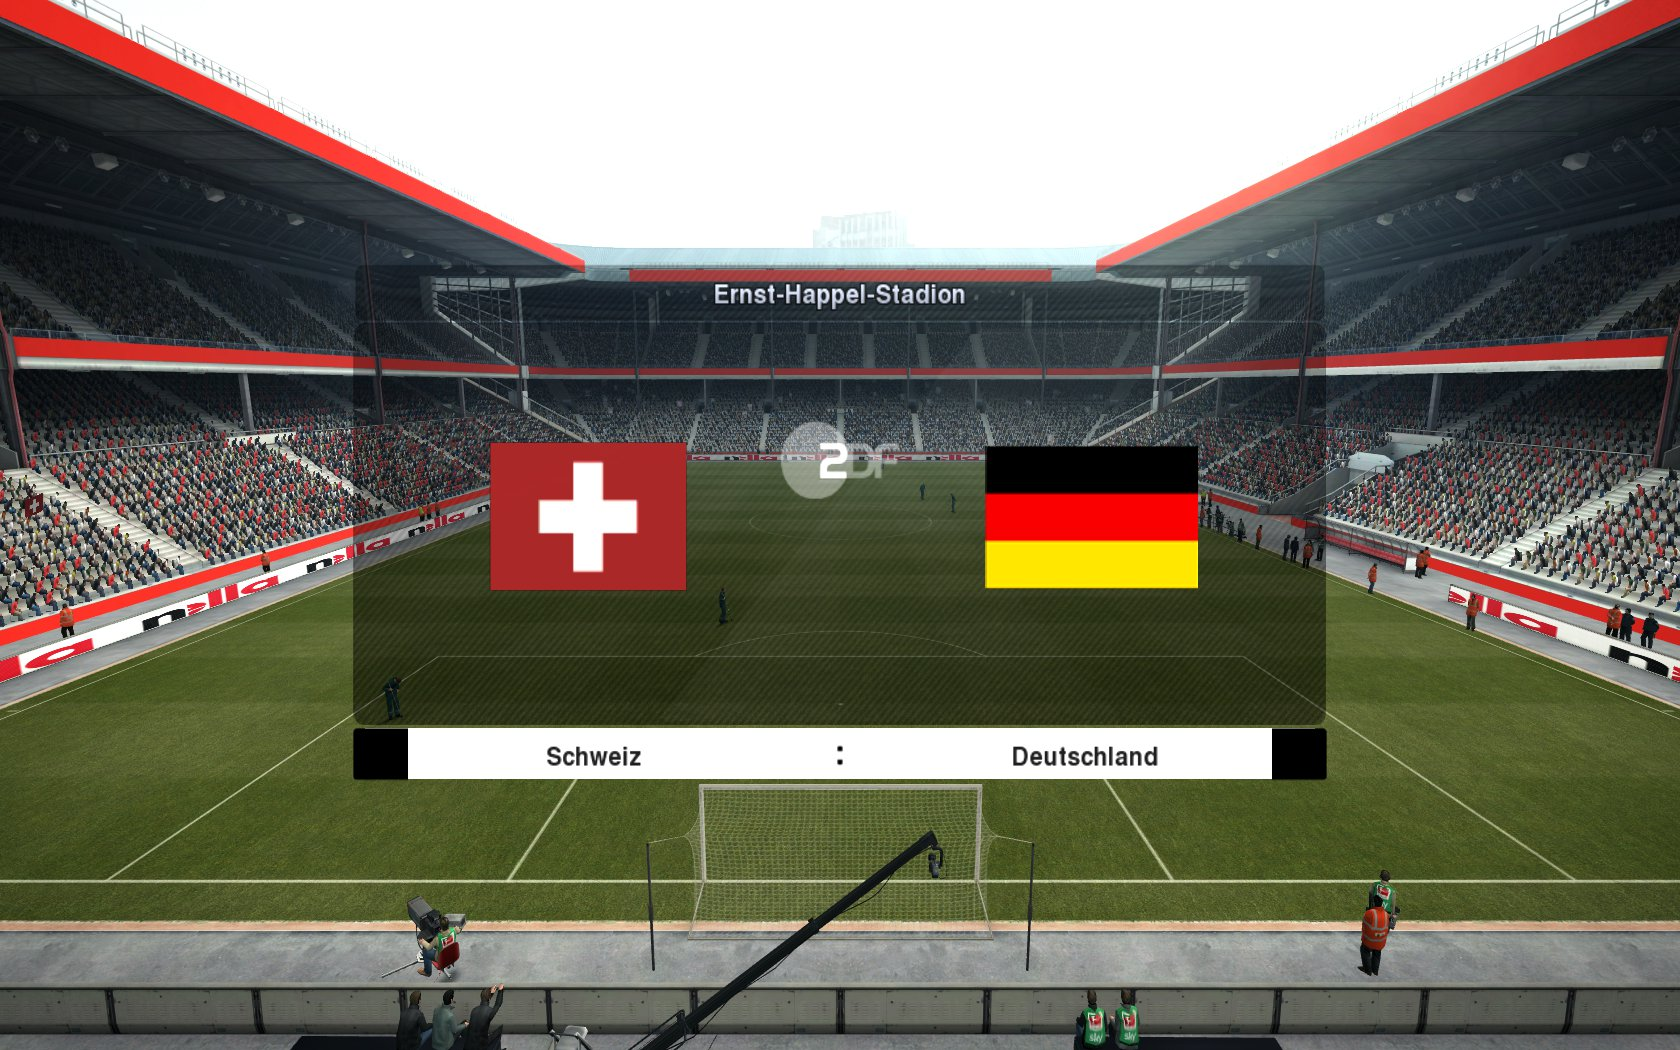 You can download Normal version and Switzerland - Germany Version for PES 2